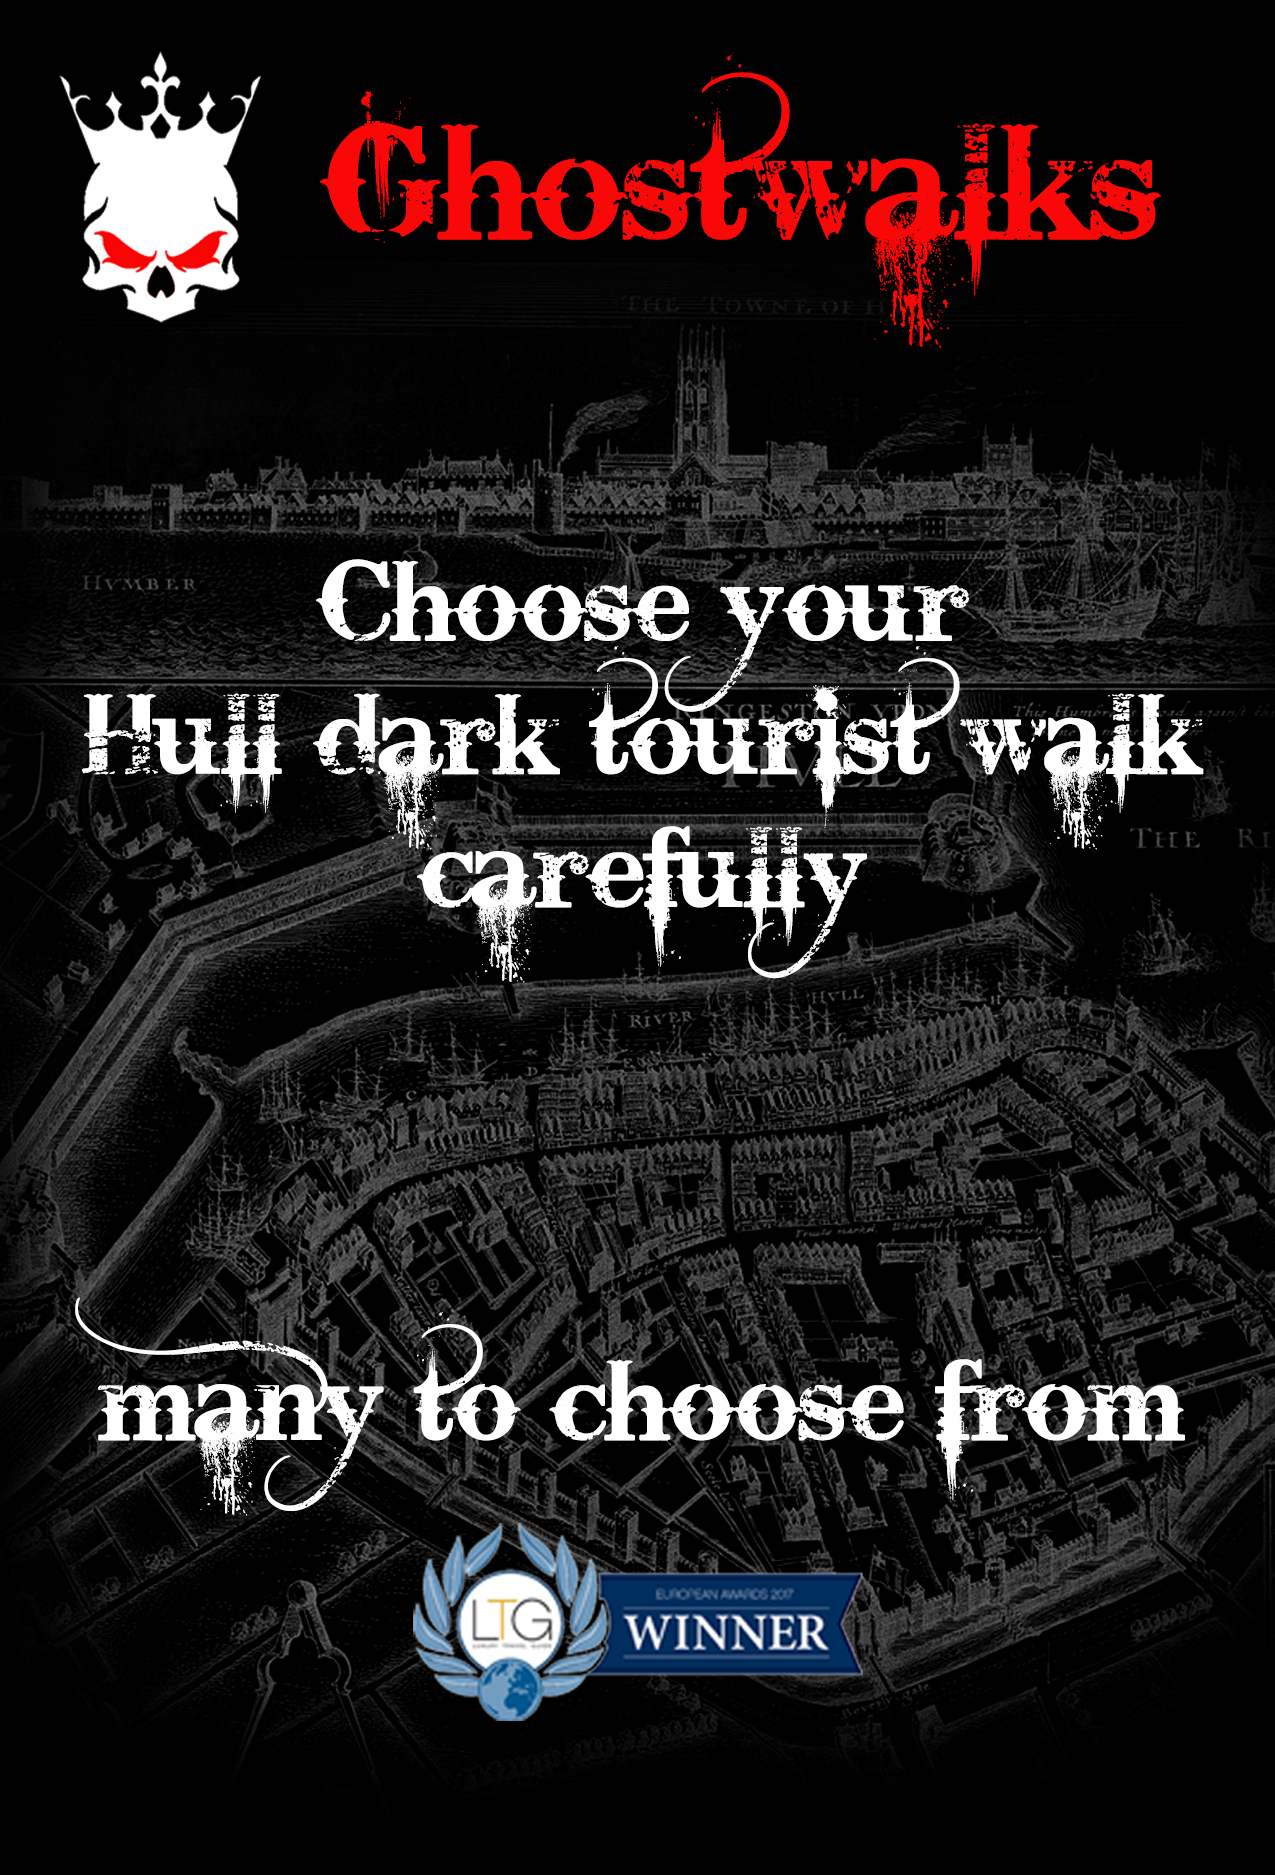 Ghostwalks hull